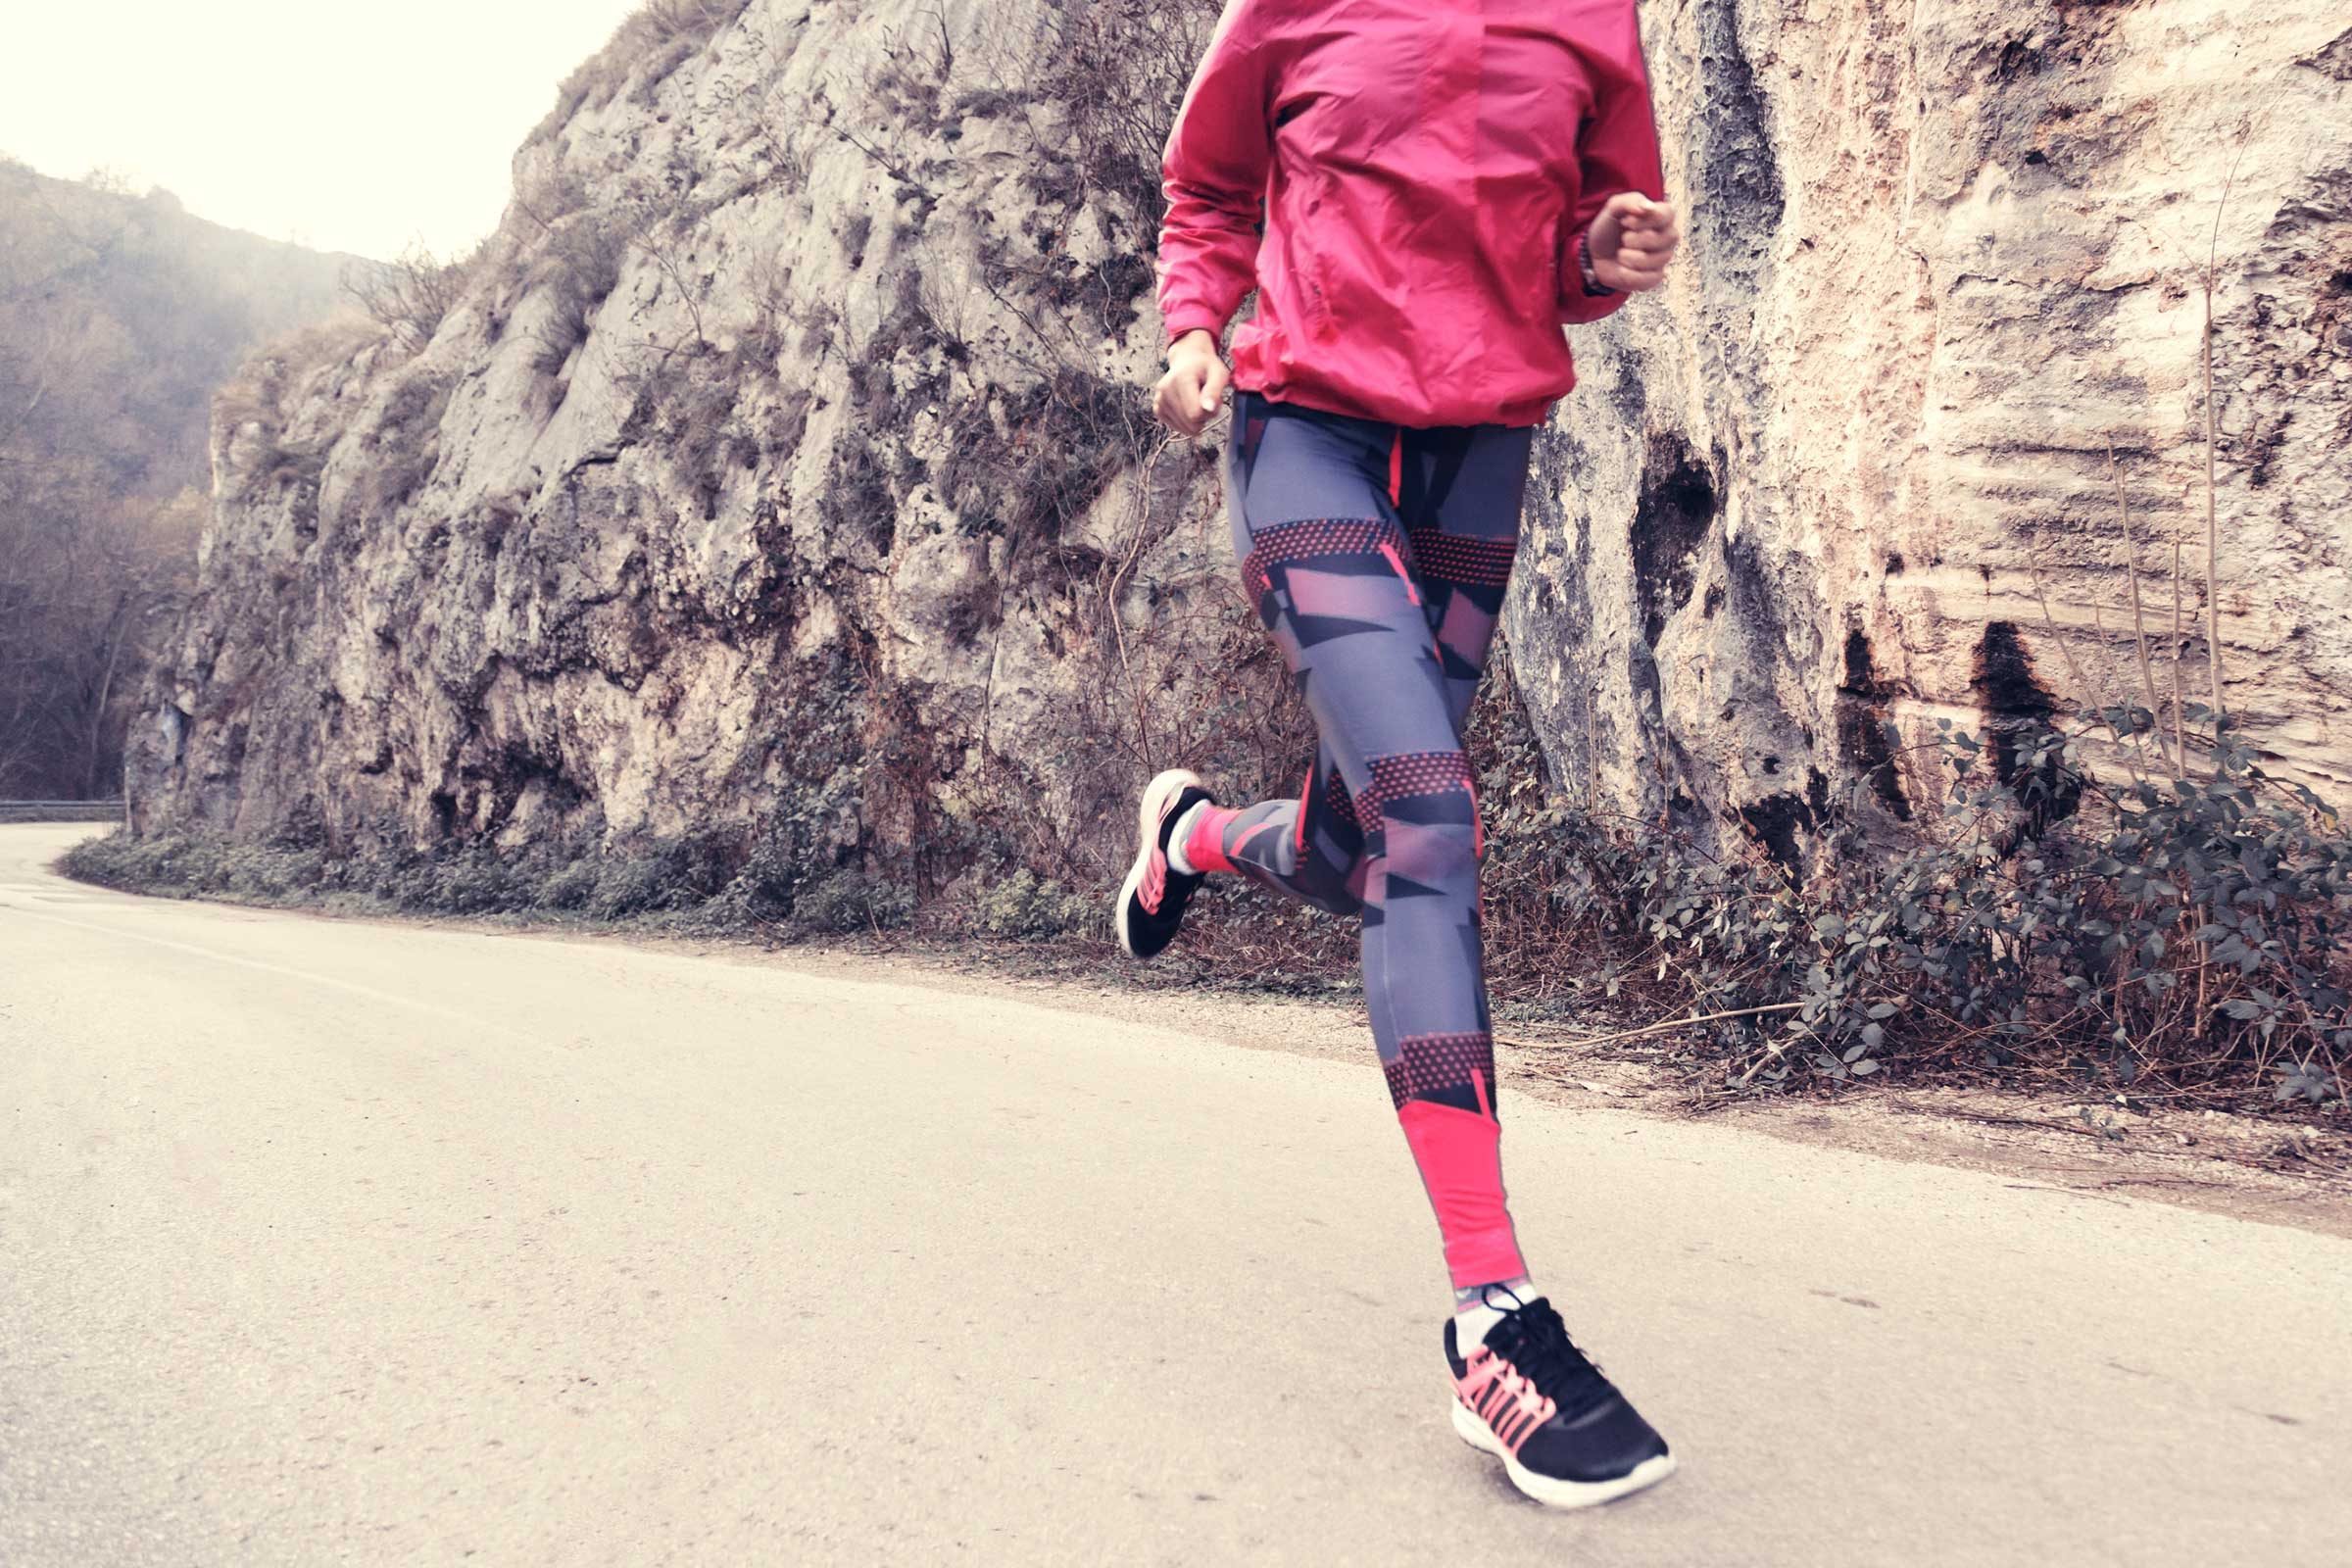 731249f622 How Leggings and Tight Clothes Cause Health Issues | Reader's Digest